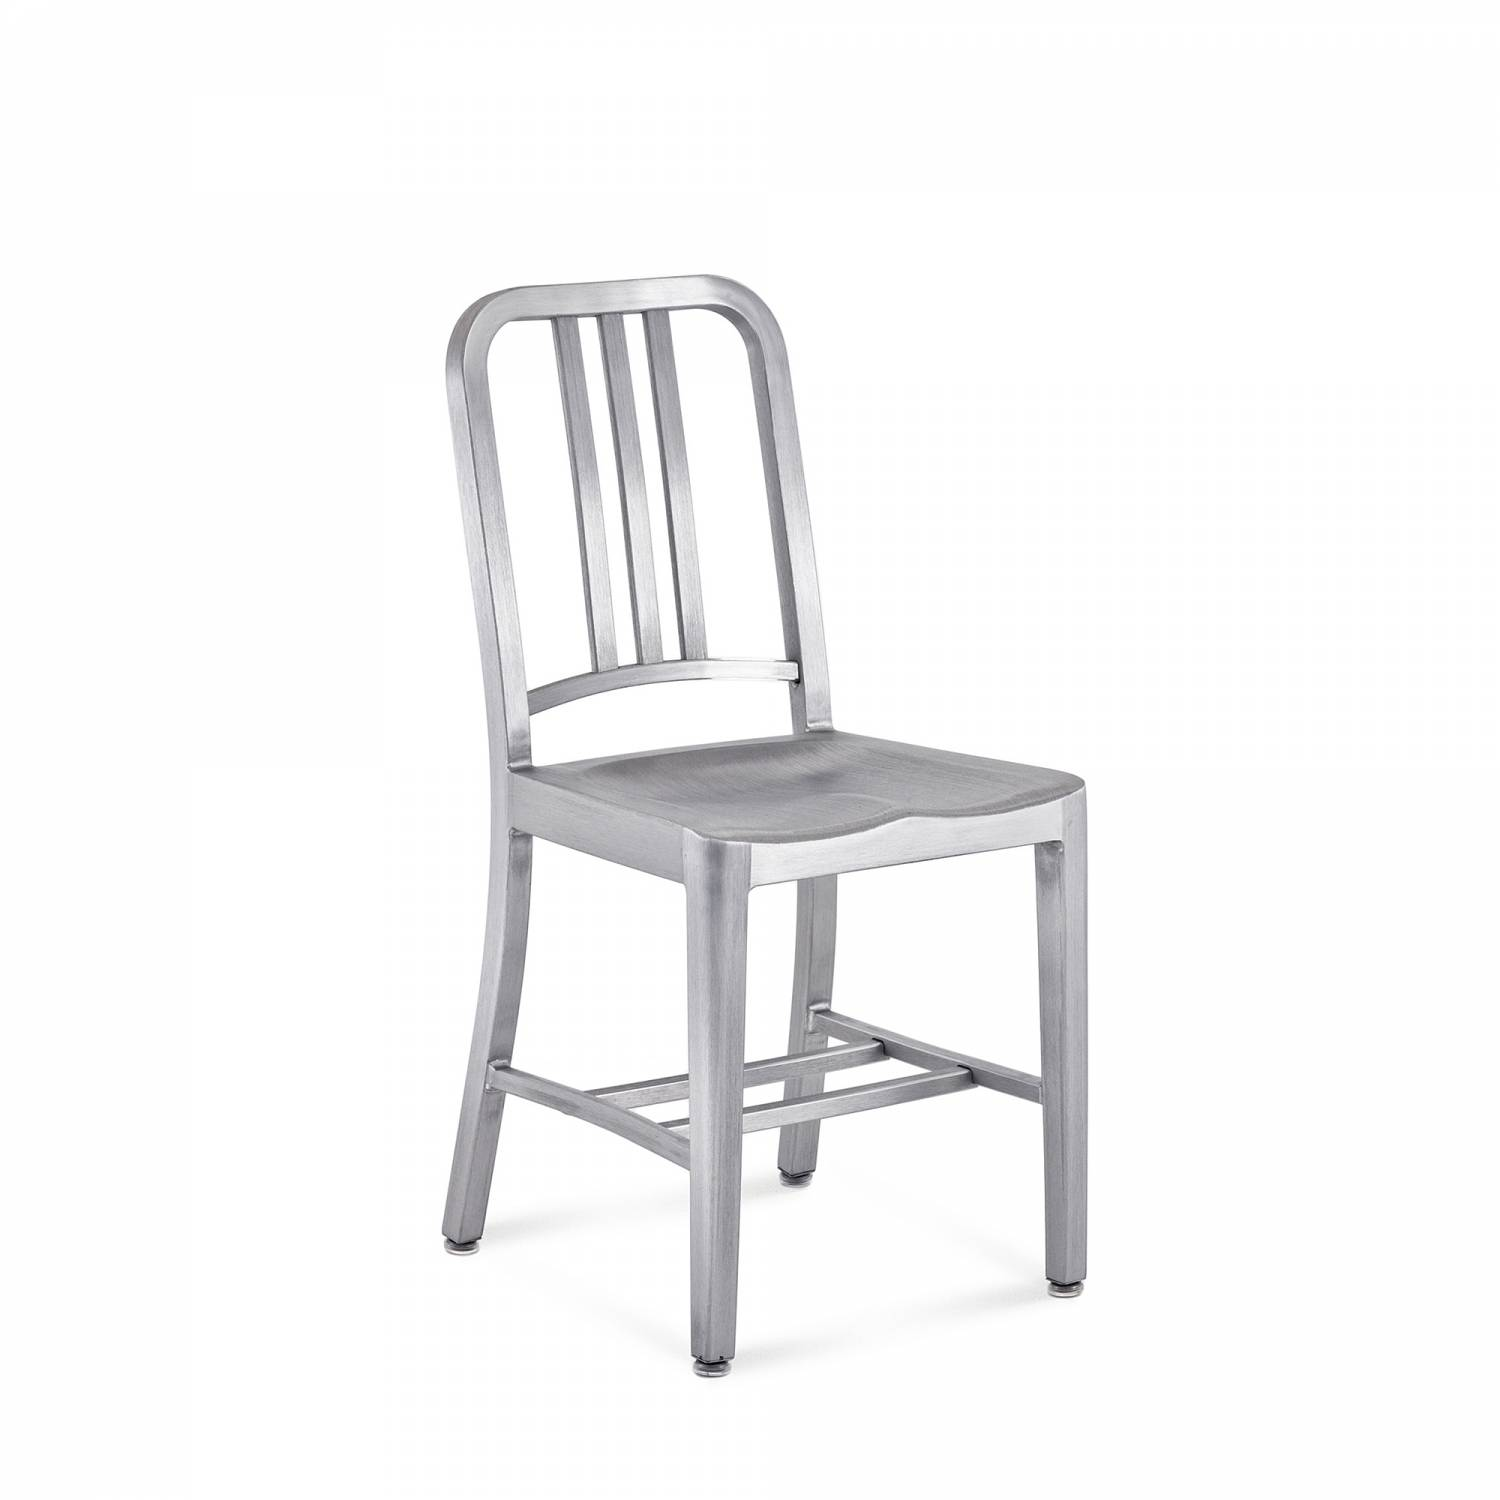 1006 navy chair (recycled aluminium) - made to order by hand